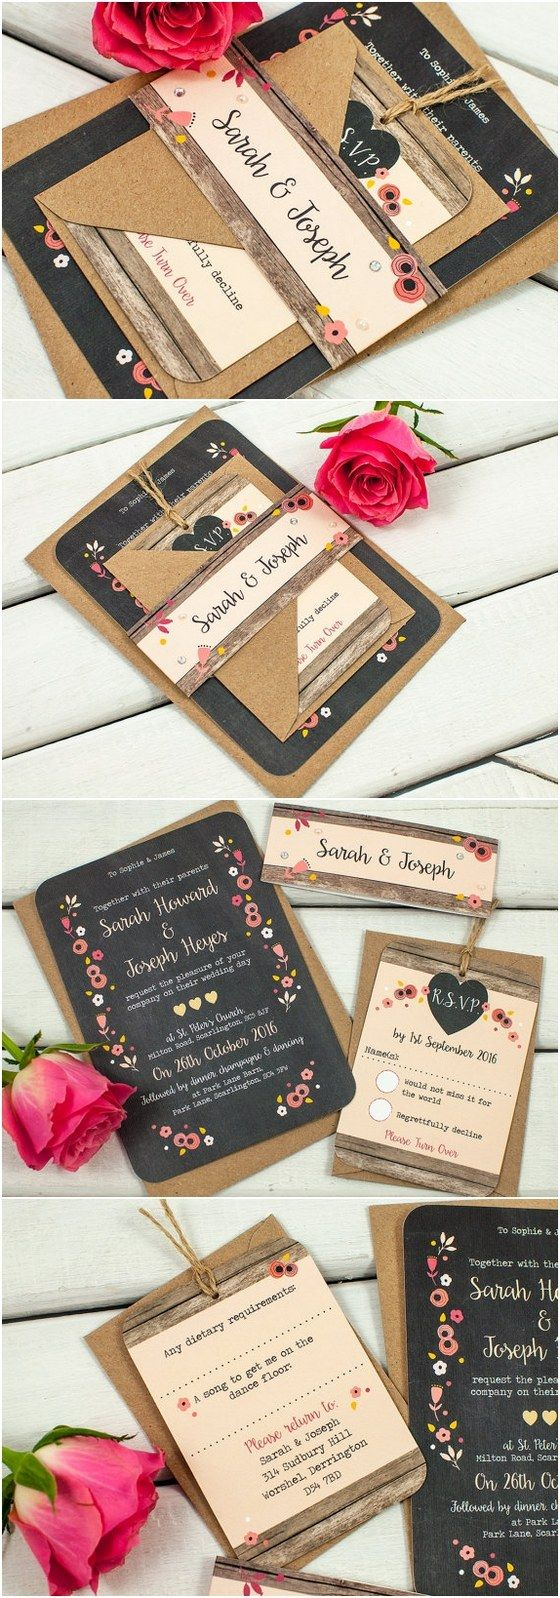 Berry Floral Chalkboard wedding invitation bundle